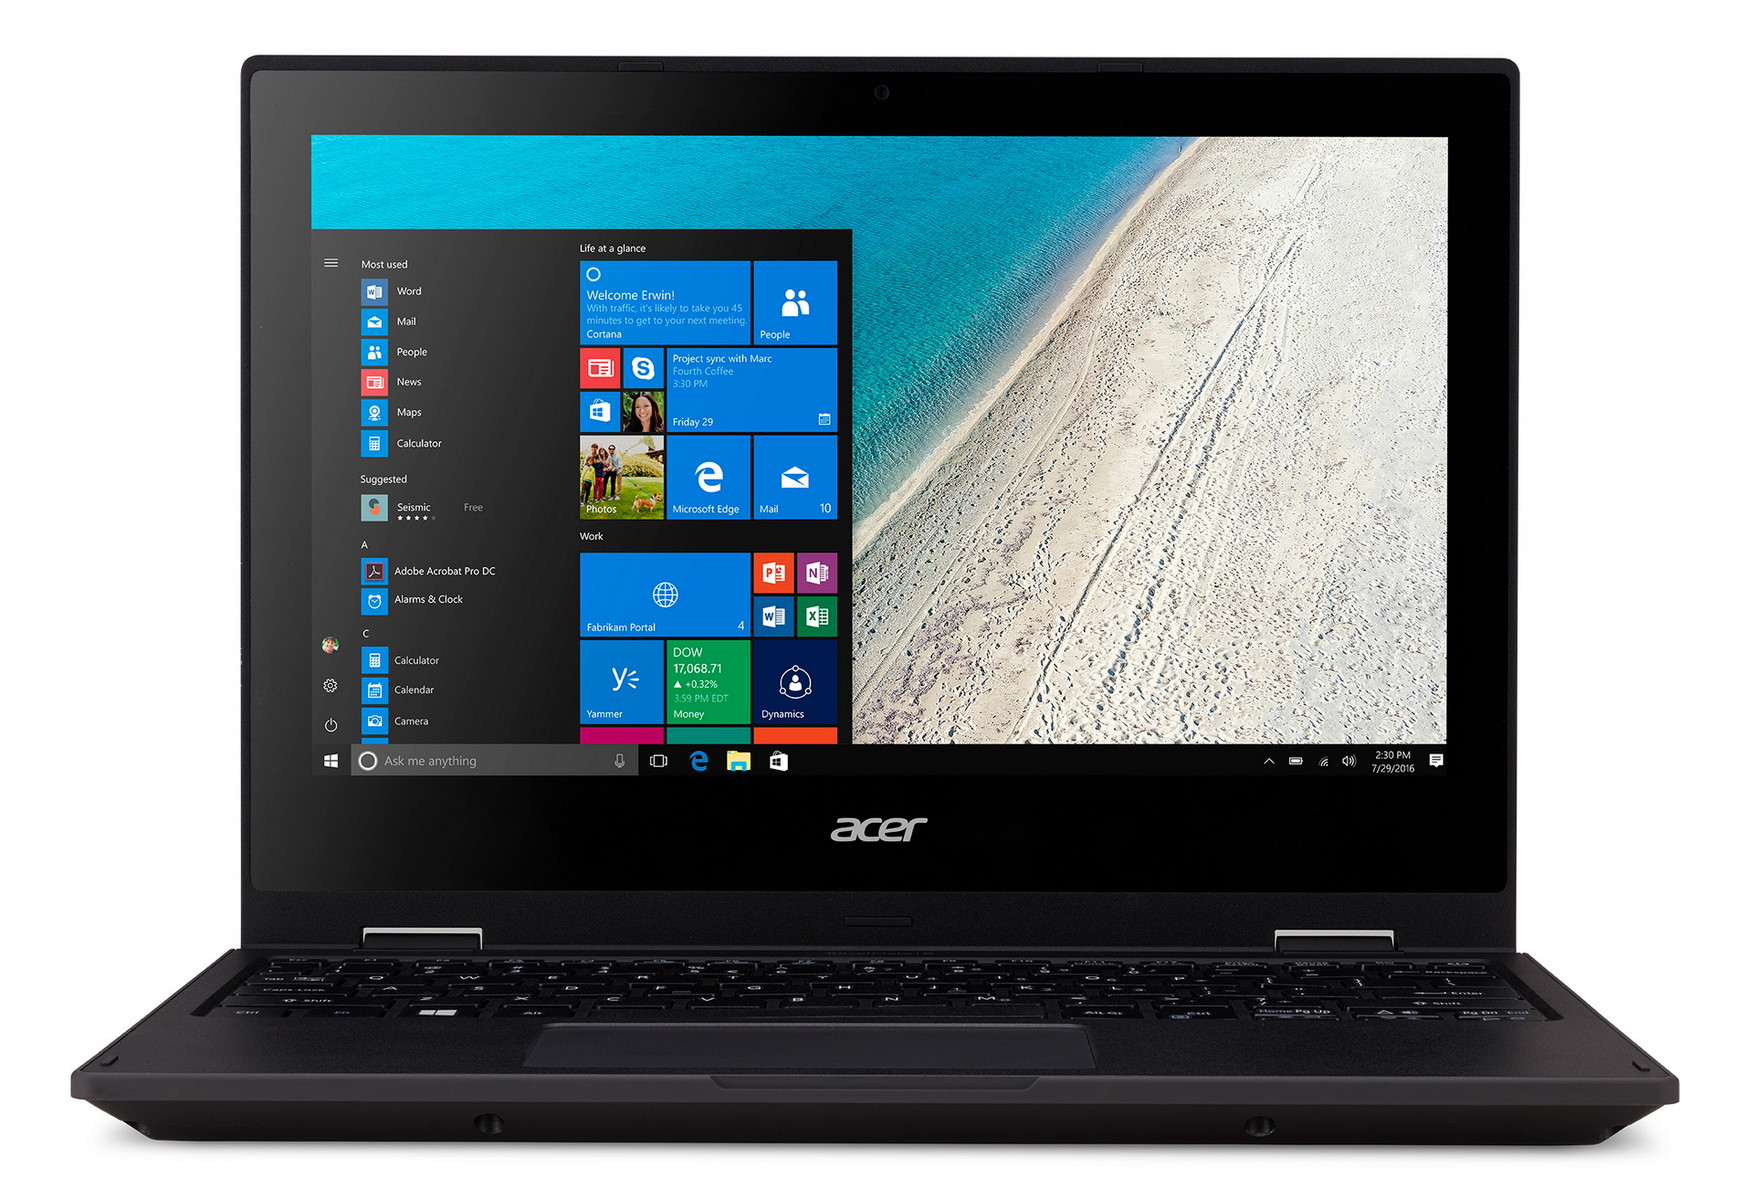 Acer Notebook Travelmate Spin B118, Intel Pentium N4200 Quad-Core, 4GB DDR3 RAM, 128GB SSD, 11.6 Zoll, 1920 x 1080 Pixel, Windows 10 Home